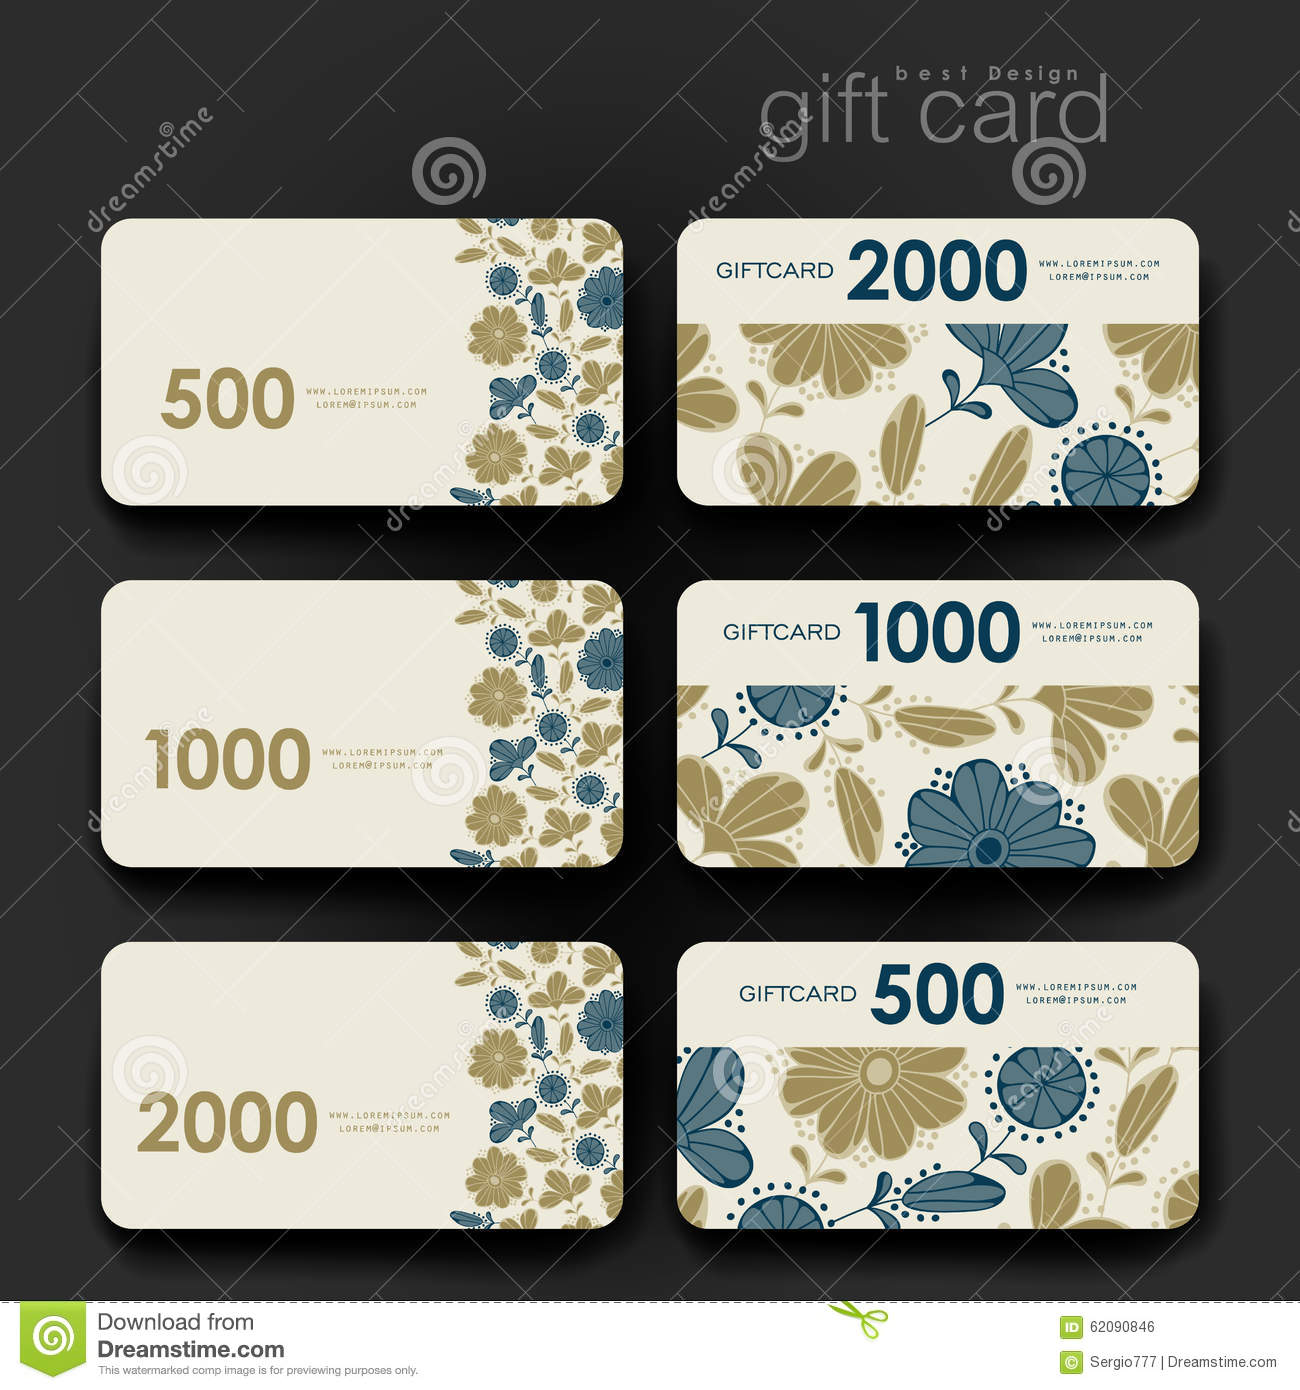 Discount coupons for floral purchases